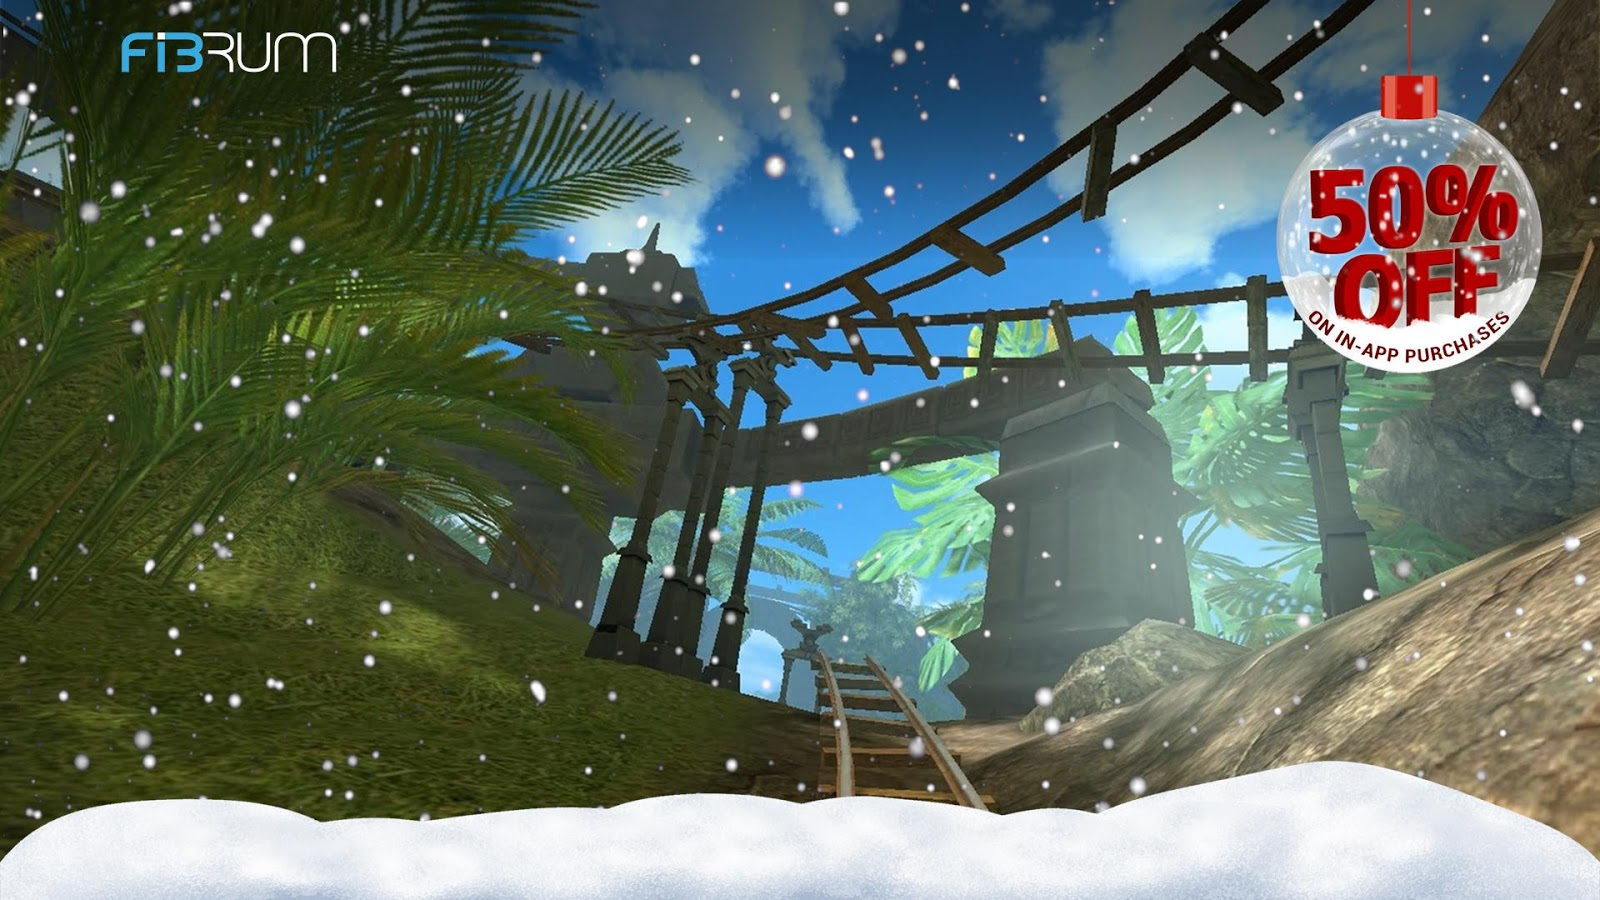 Roller Coaster Lever : Roller coaster vr attraction apps para android no google